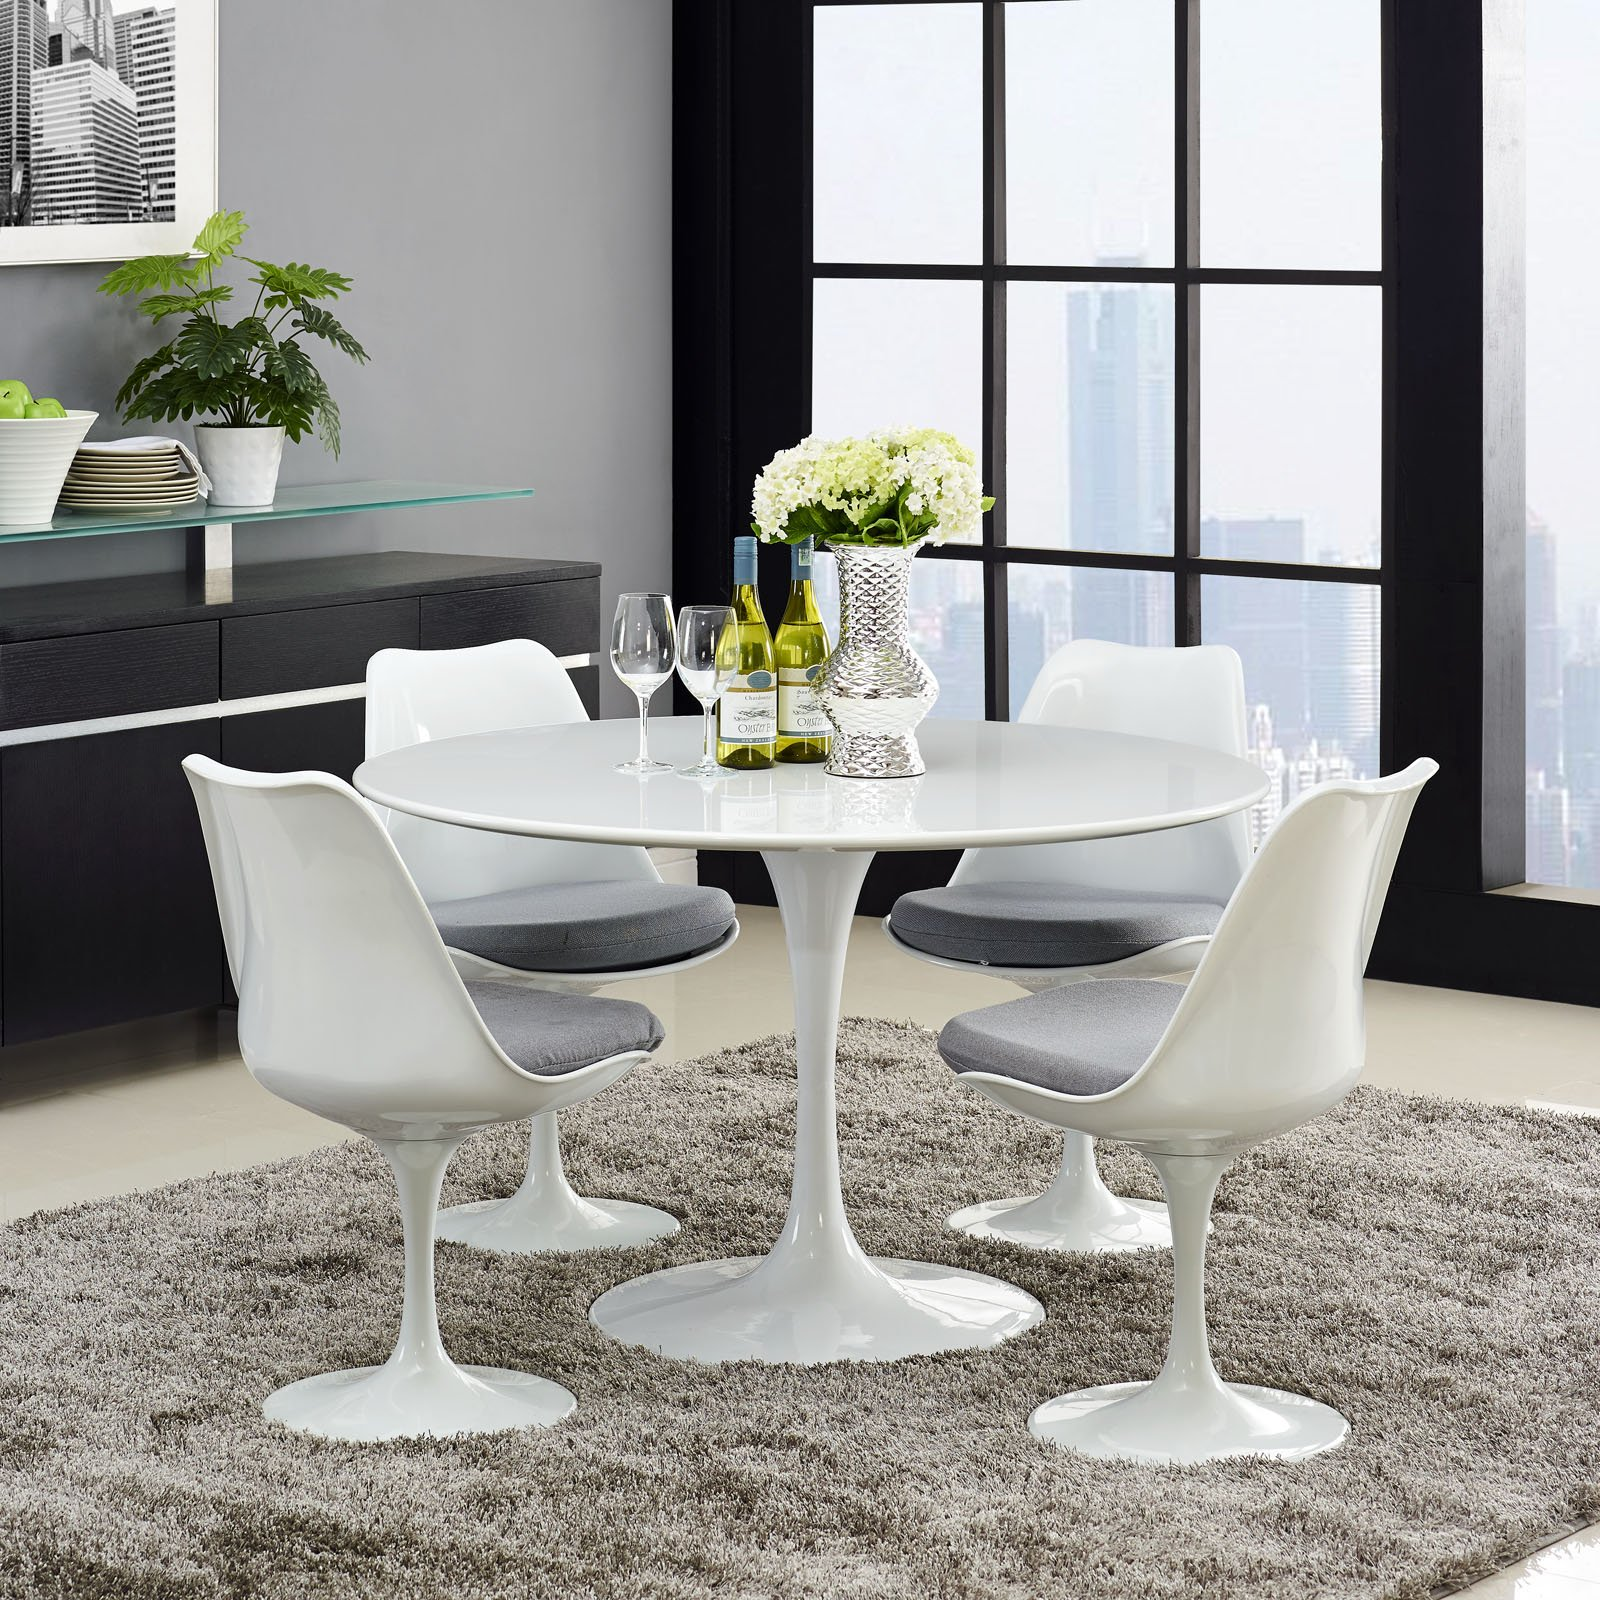 Tulip 47 Round Wood Top Dining Table Wl 00103 Mw Lippa Dining